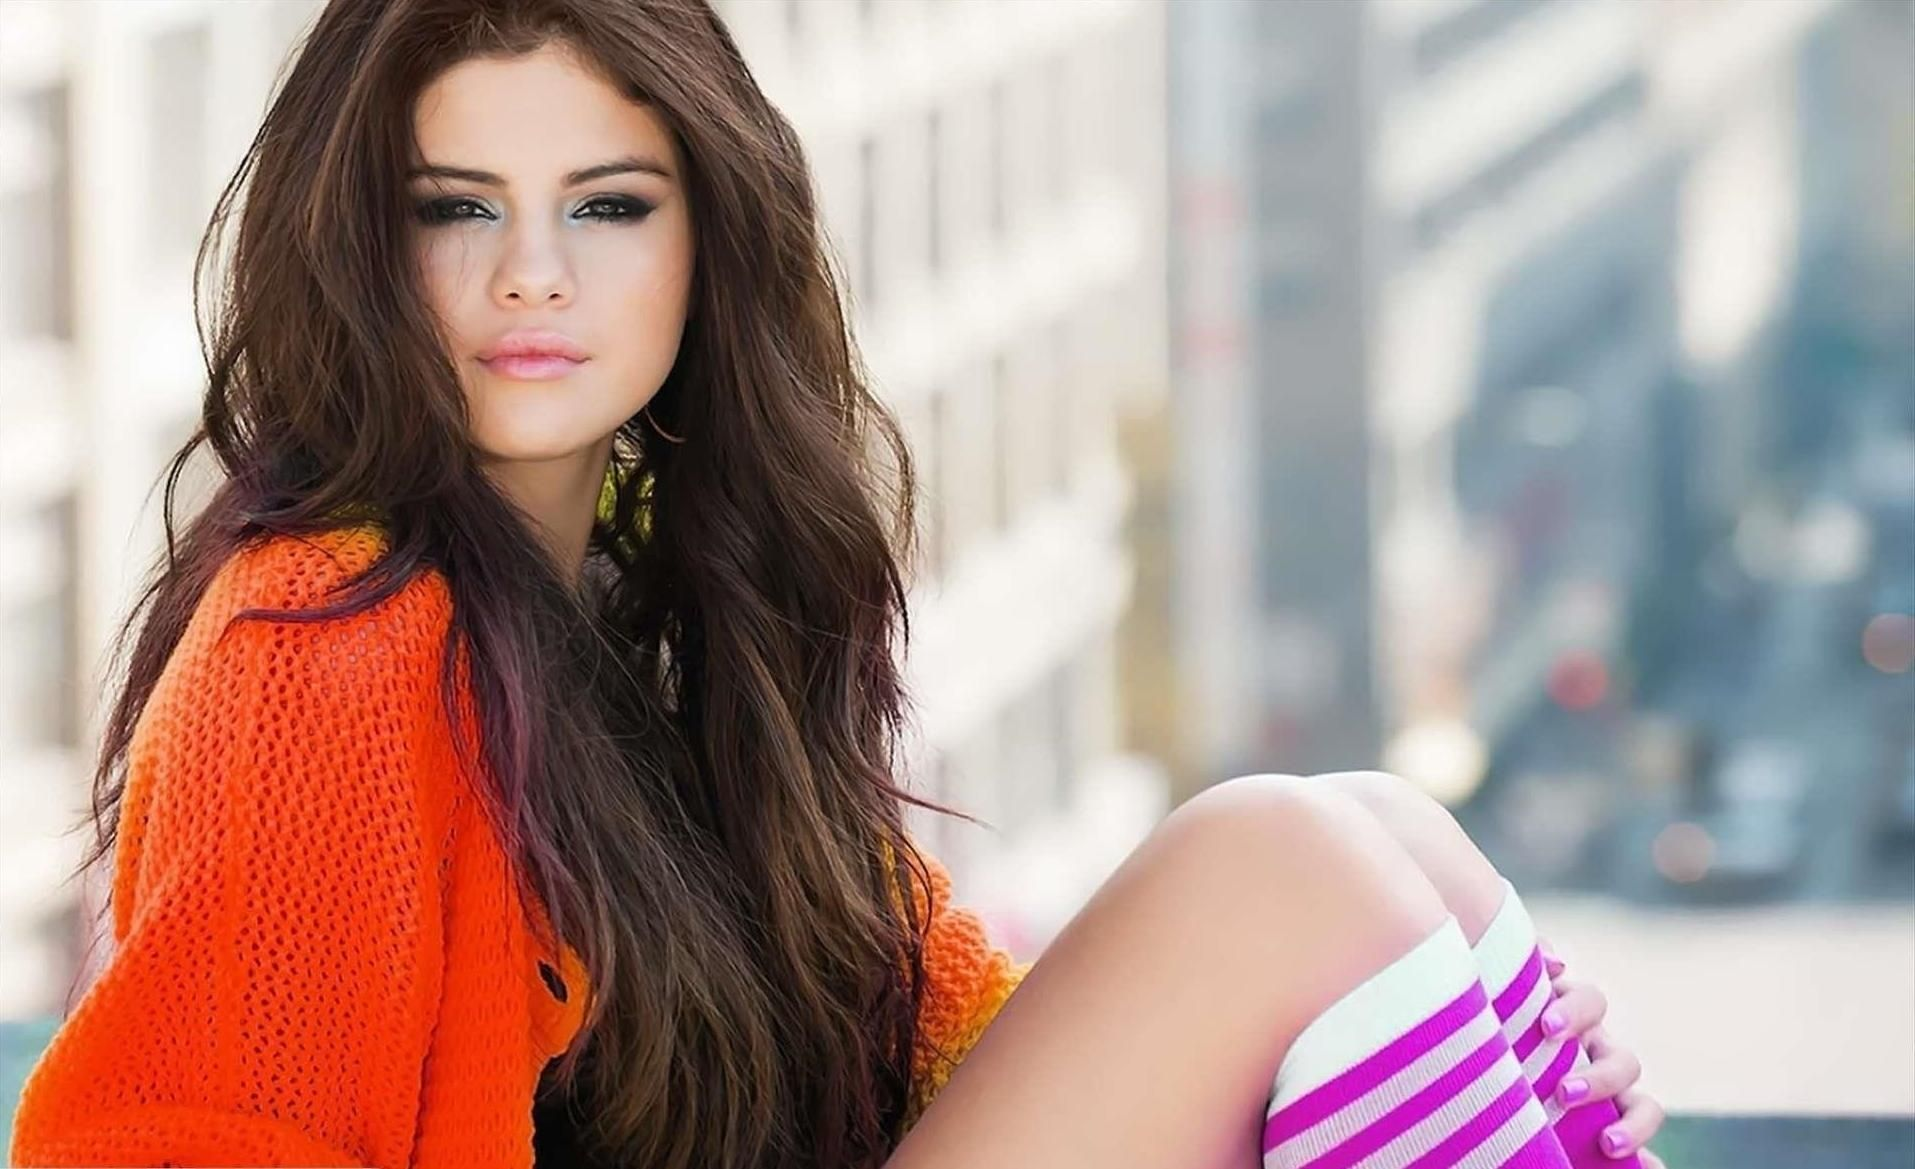 10 New Selena Gomez Hd Wallpapers FULL HD 1080p For PC